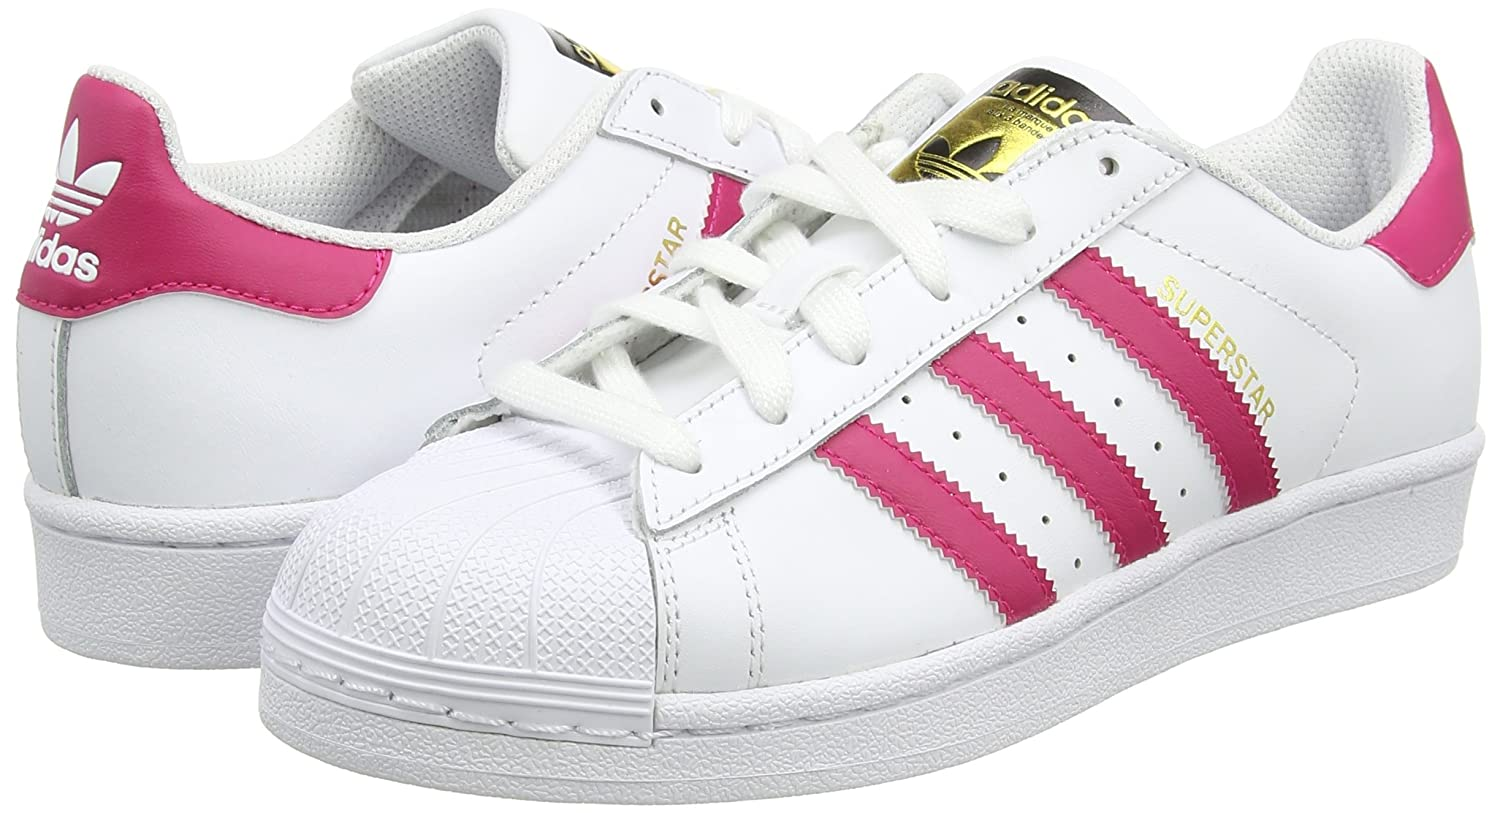 4a00725ac adidas superstar shoes sale india adidas superstar white and pink ...